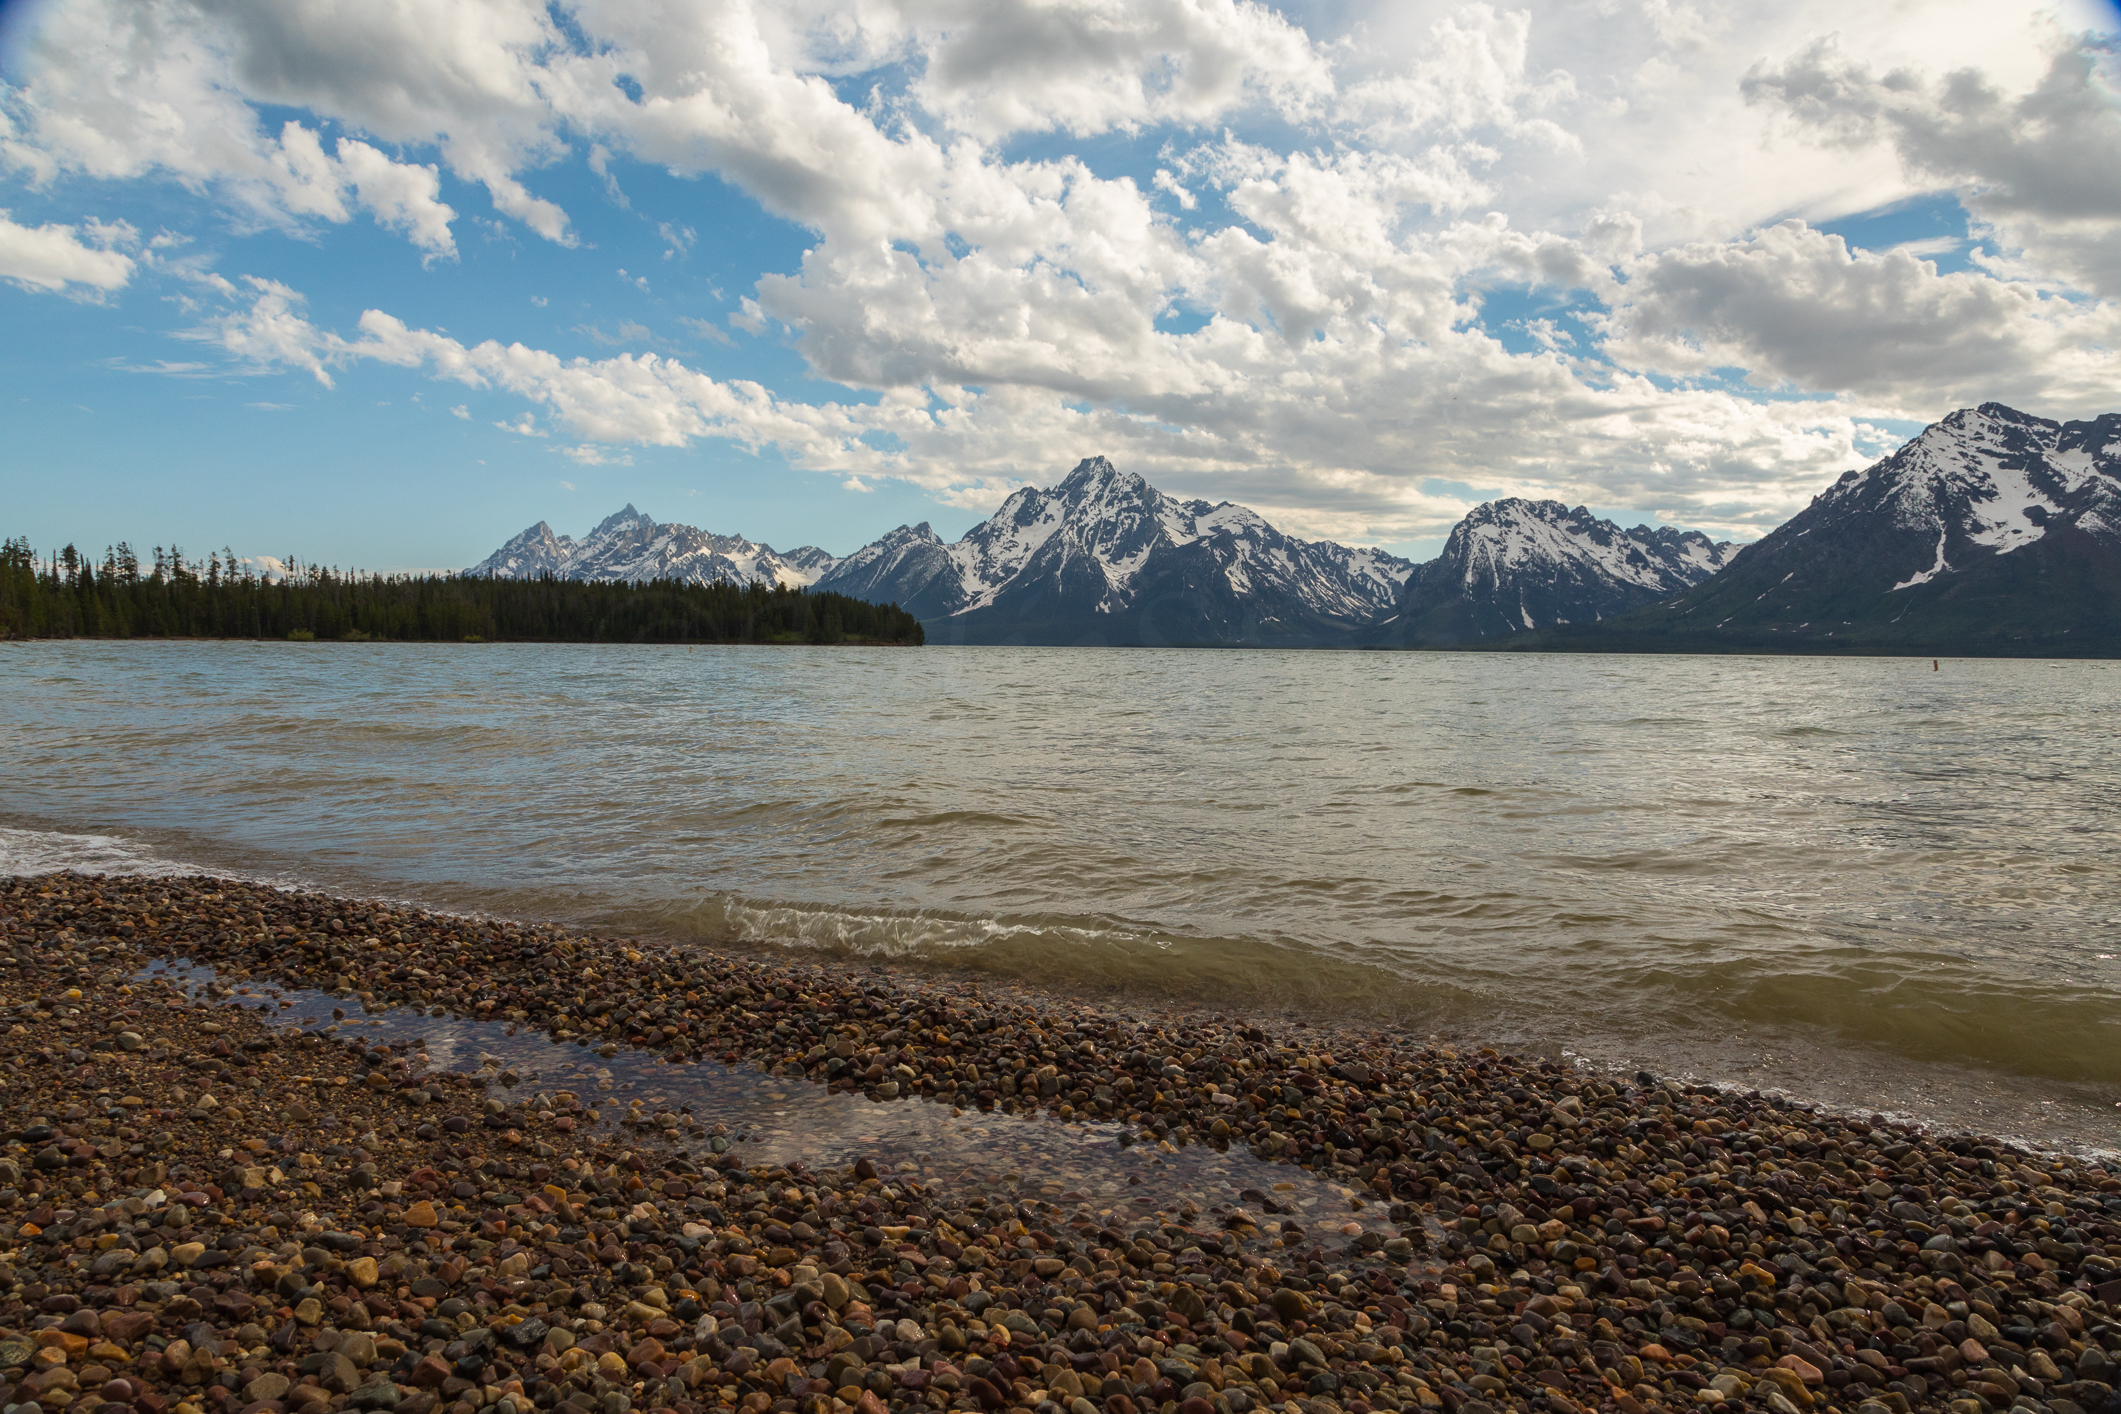 Colter Bay, Image # 3687